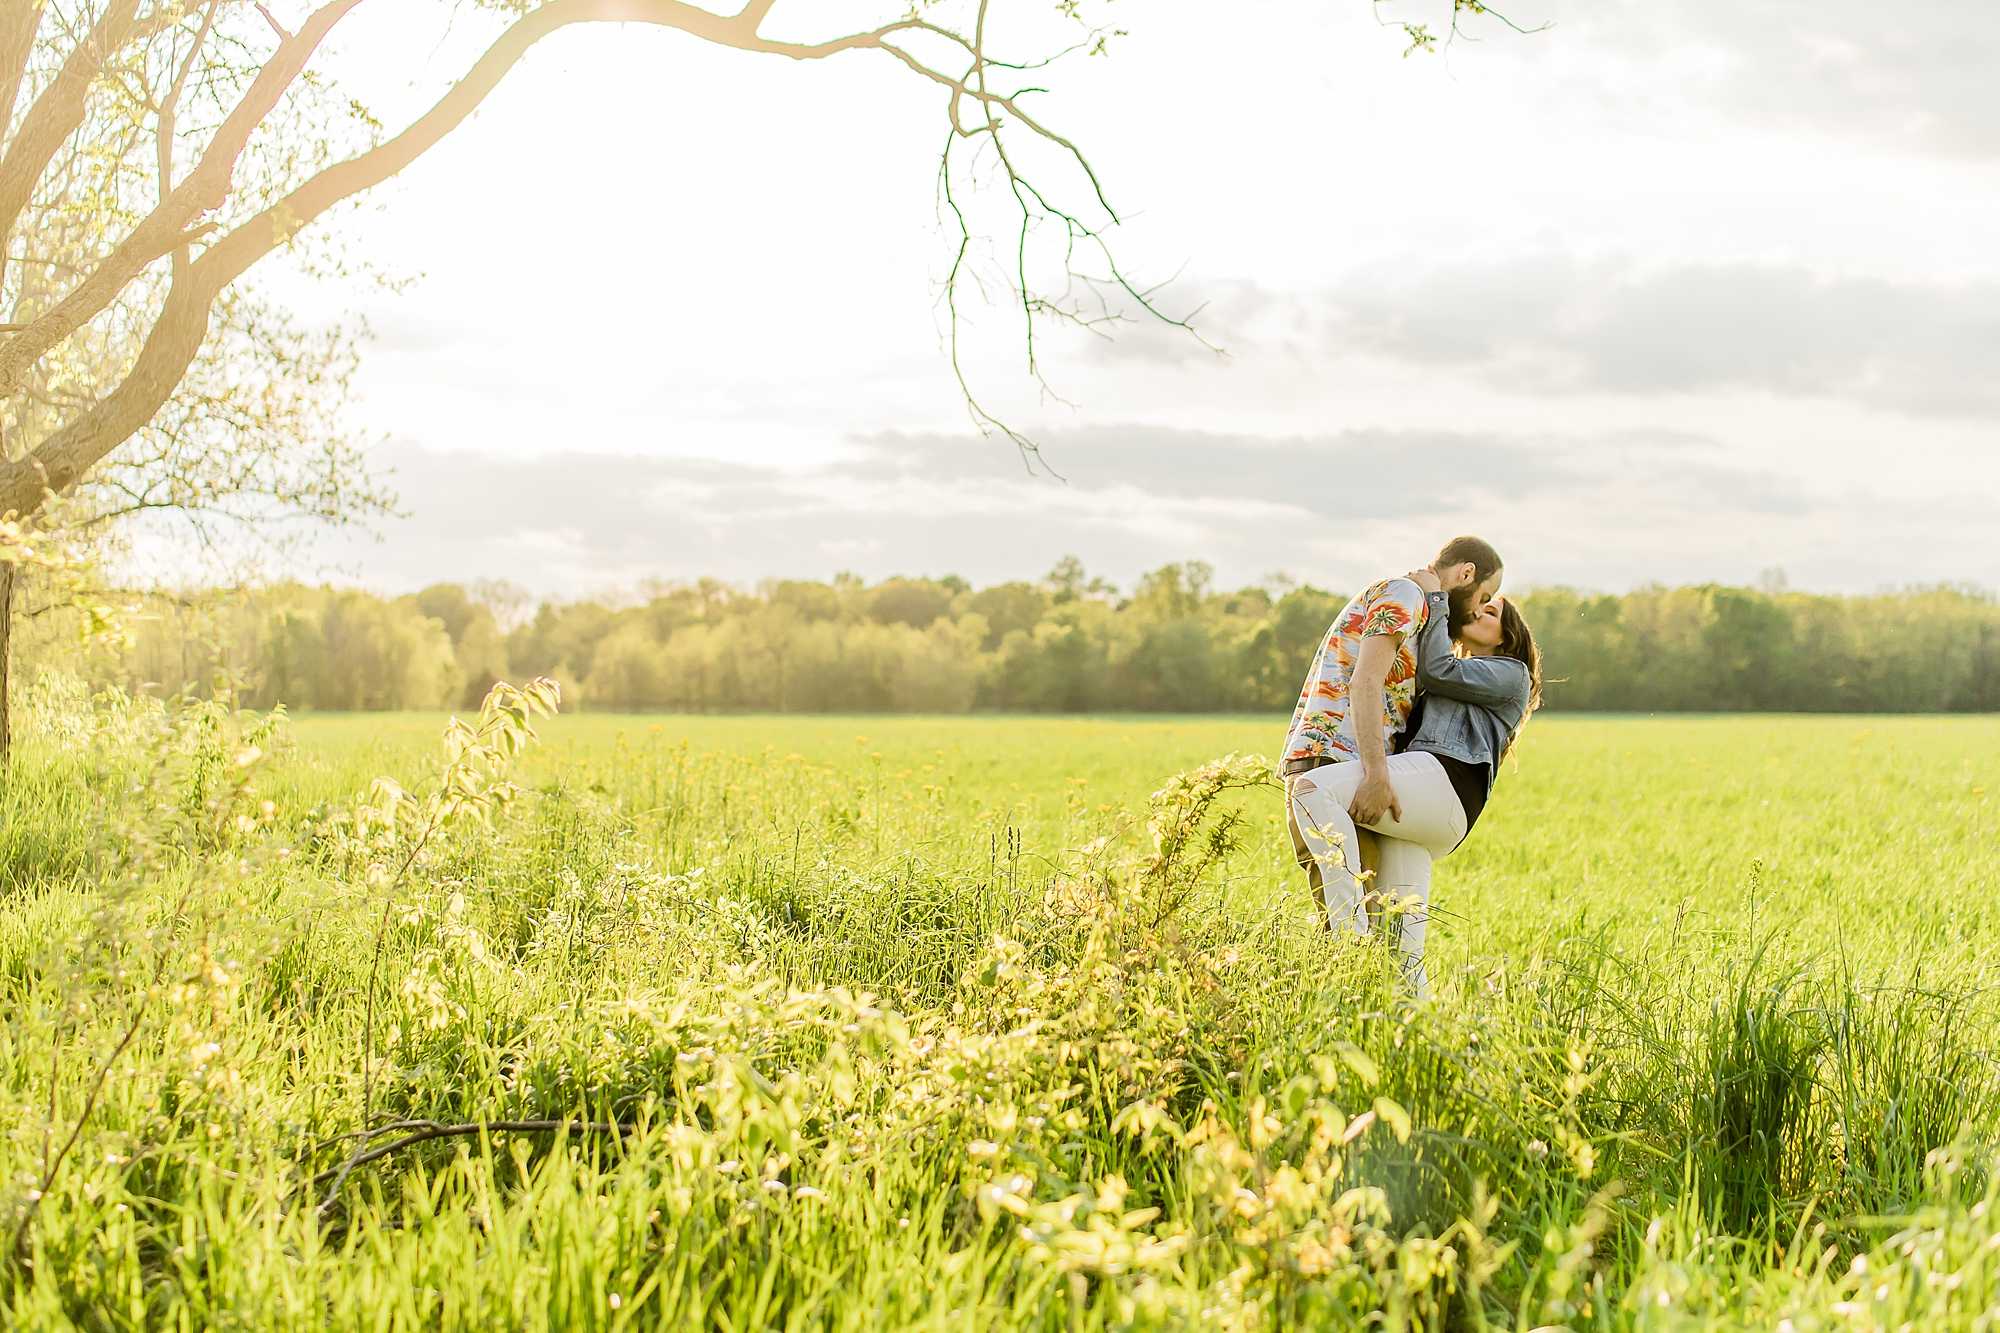 west lafayette indiana wedding photography tips to have a good wedding planning_0419.jpg